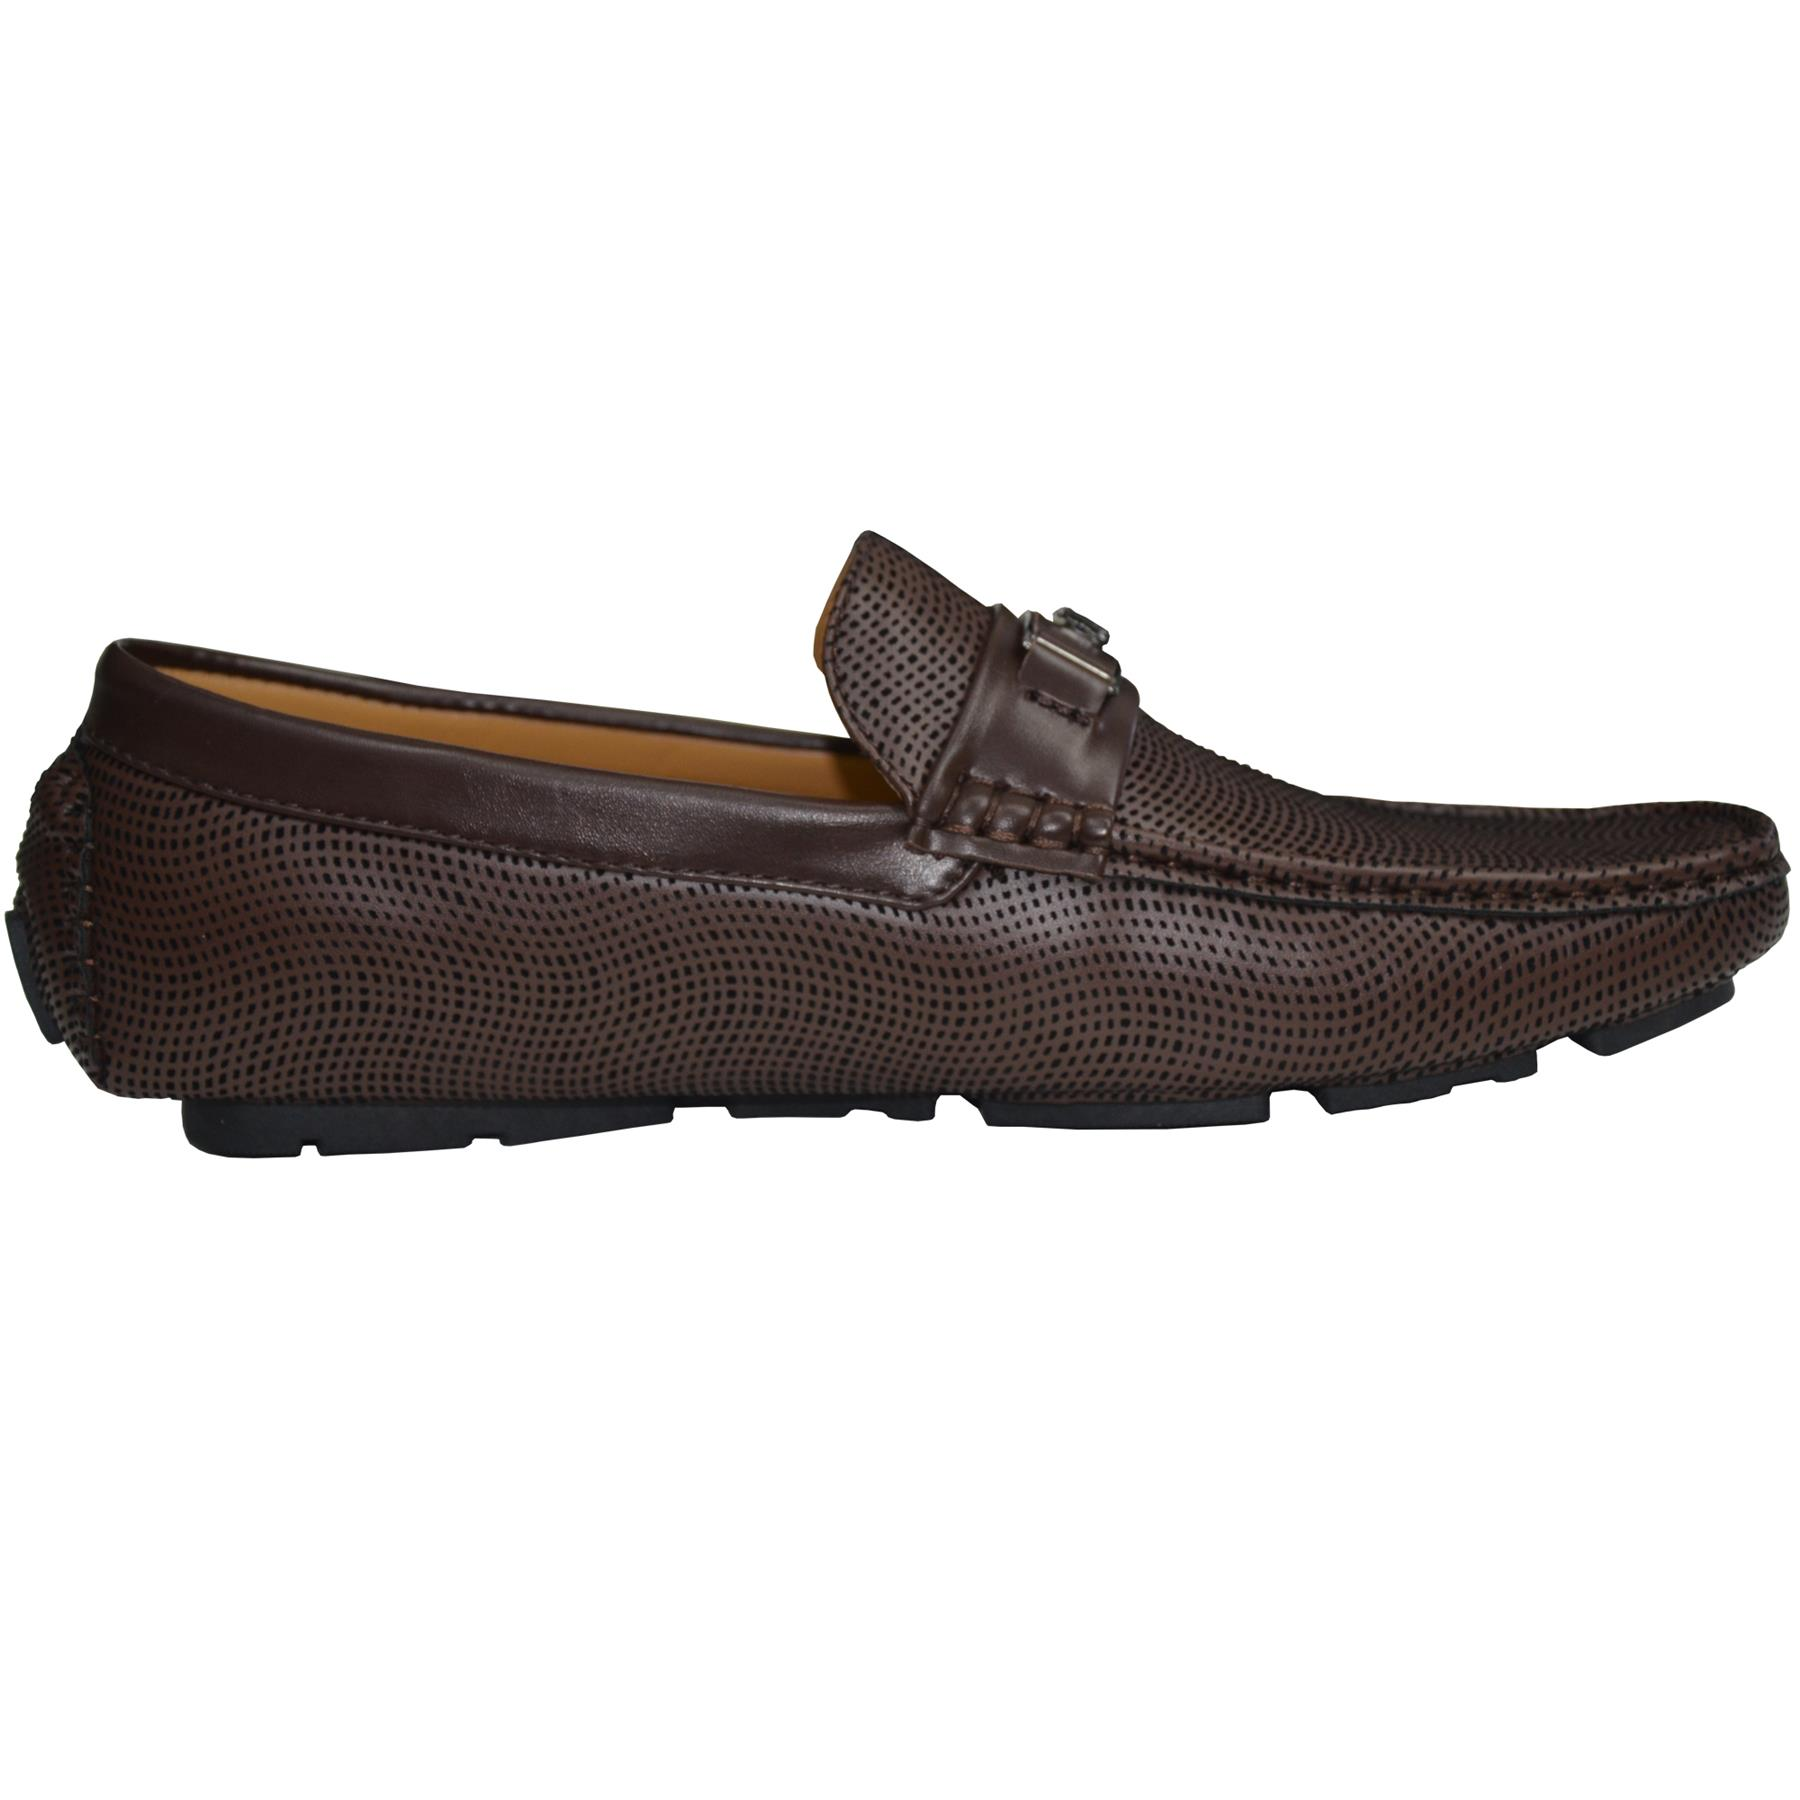 Mens-Slip-Ons-Shoes-Boat-Deck-Driving-Smart-Buckle-Moccasins-Suede-Look-Loafers thumbnail 17